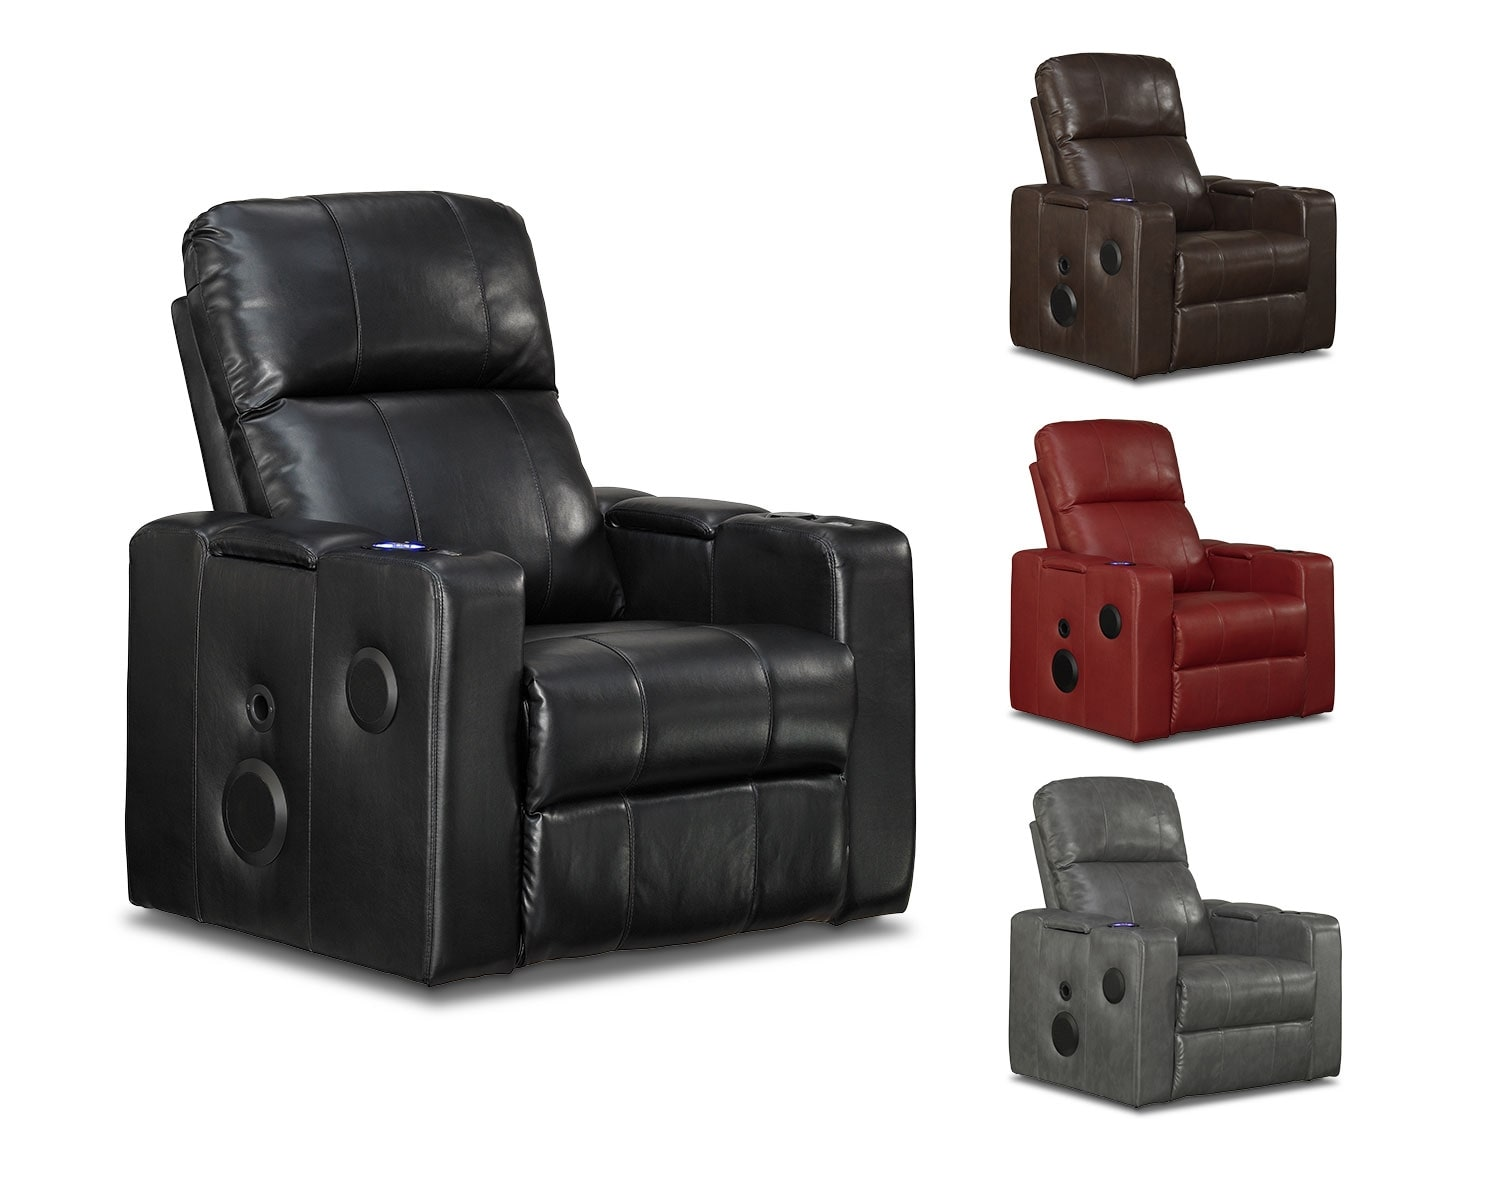 Living Room Furniture - The Skylar Collection - Home Theater Recliner